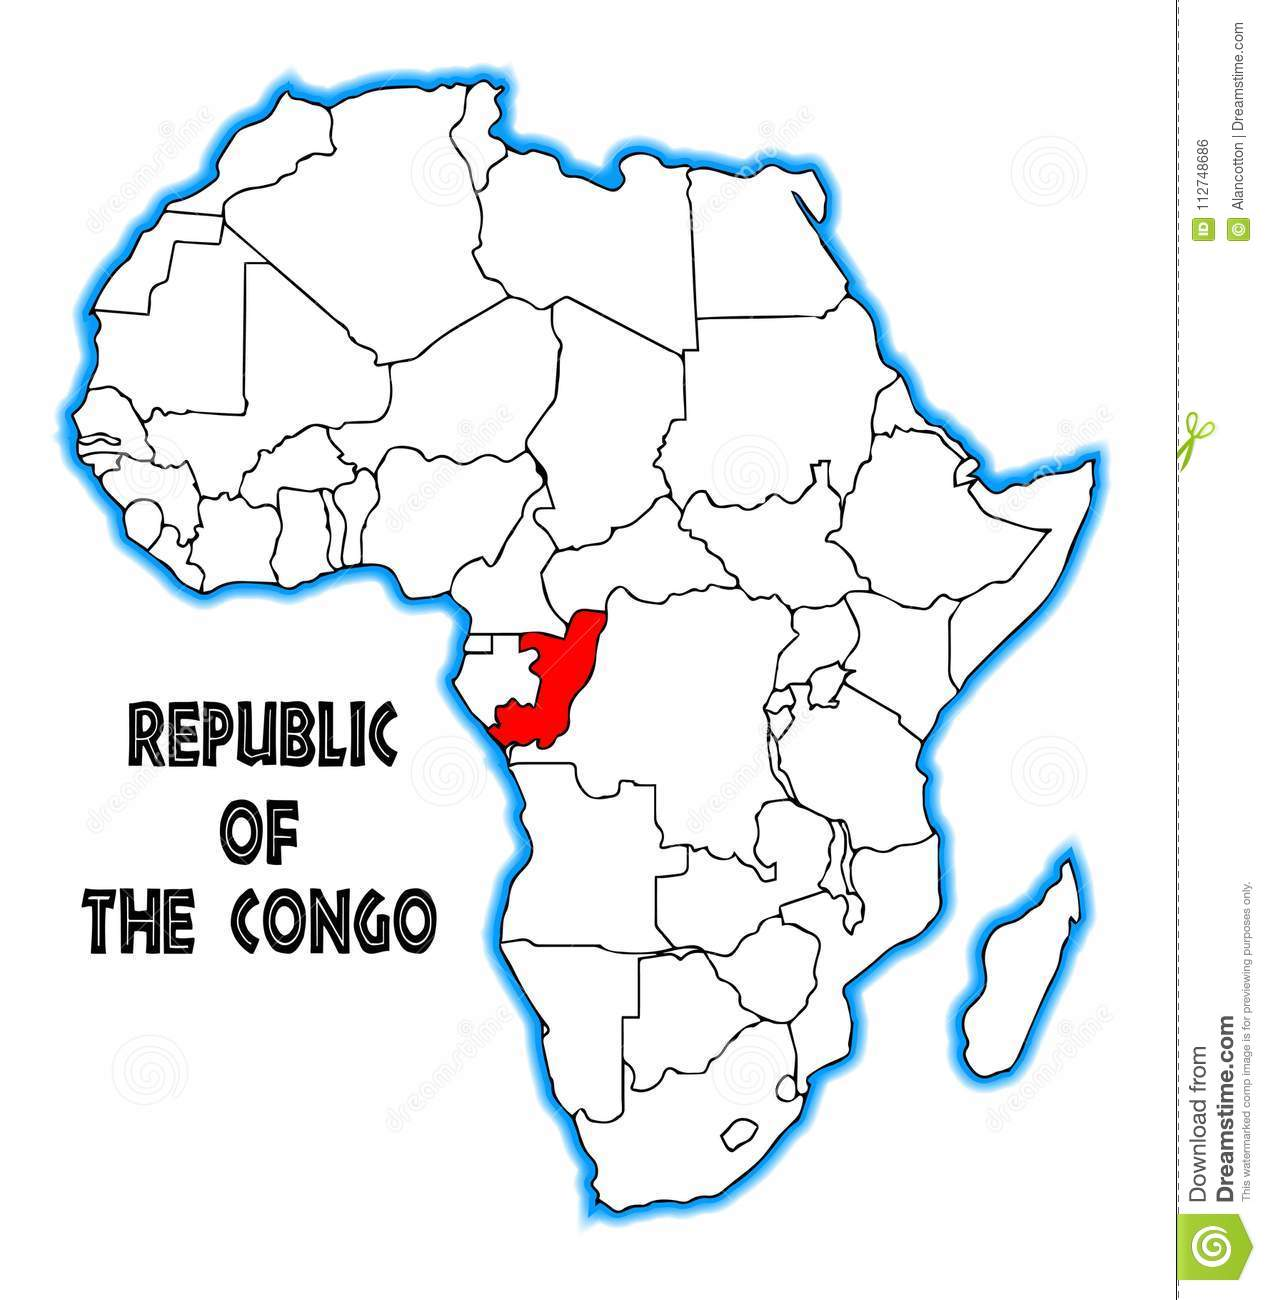 Congo On Africa Map.Republic Of The Congo Africa Map Stock Vector Illustration Of